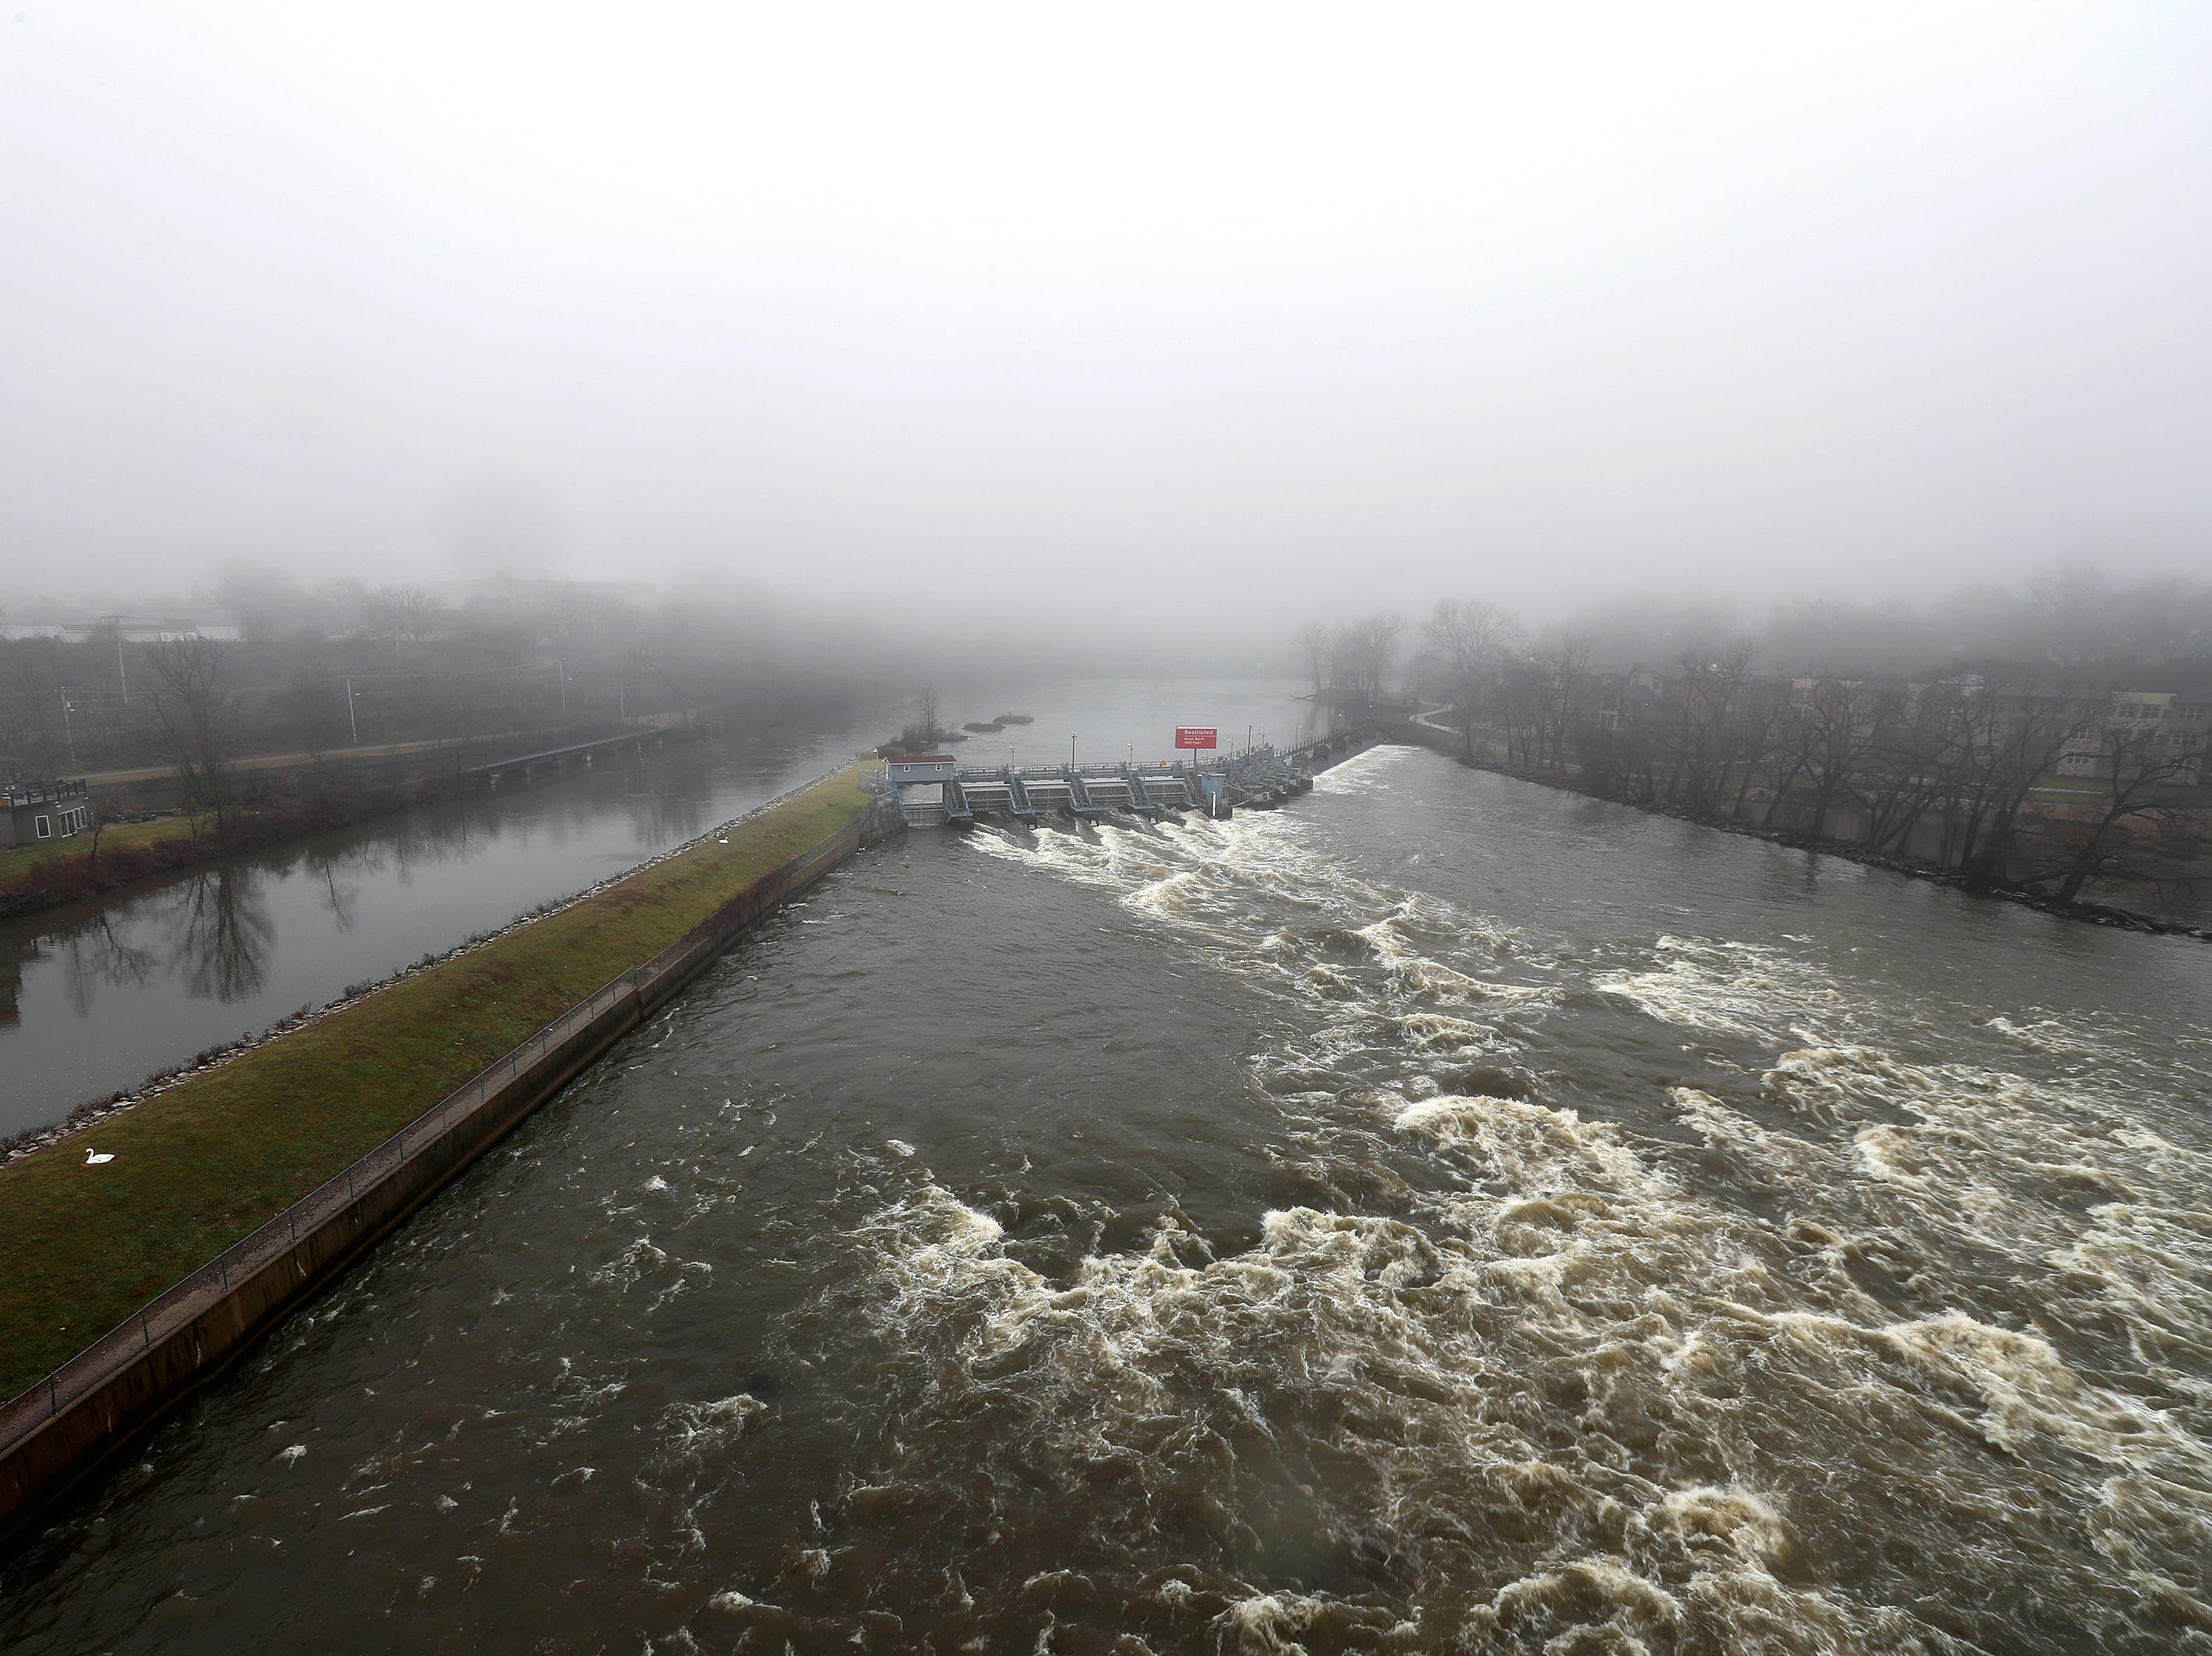 Fog hangs over the Fox River Saturday, Nov. 24, 2018, in Appleton, Wis.Danny Damiani/USA TODAY NETWORK-Wisconsin